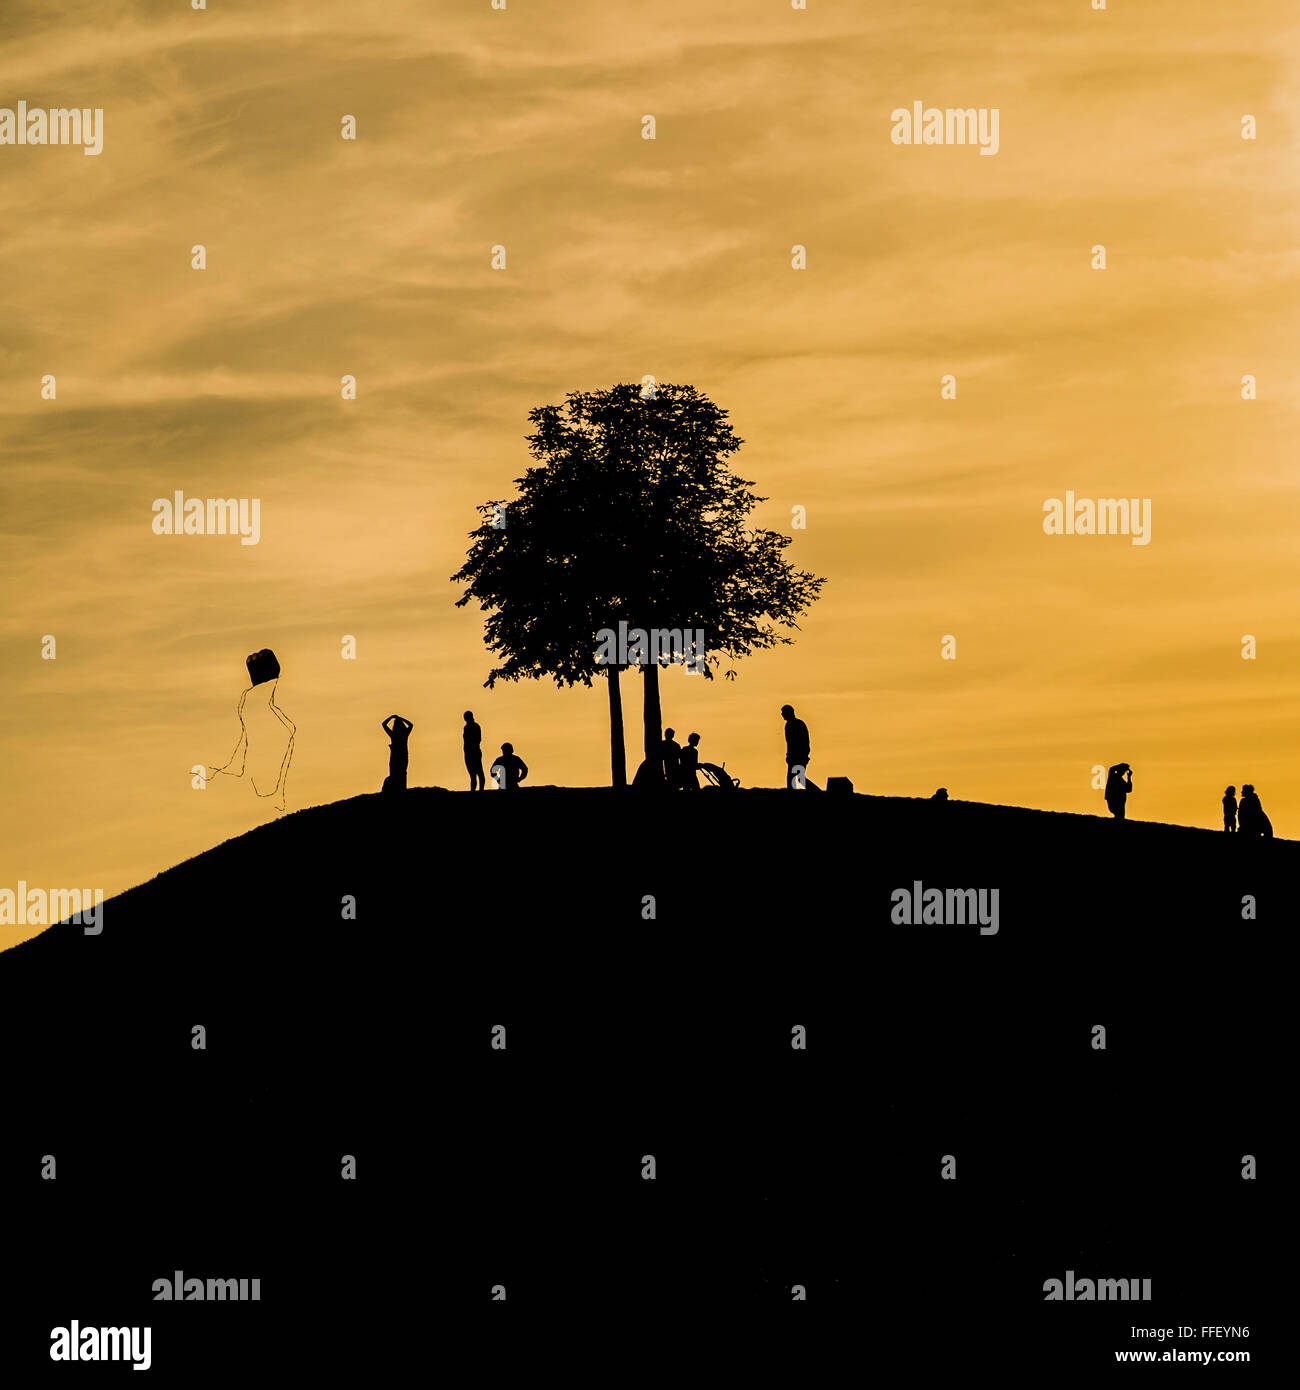 silhouettes of people on a hill, tree and a person flying a kite at dusk - Stock Image